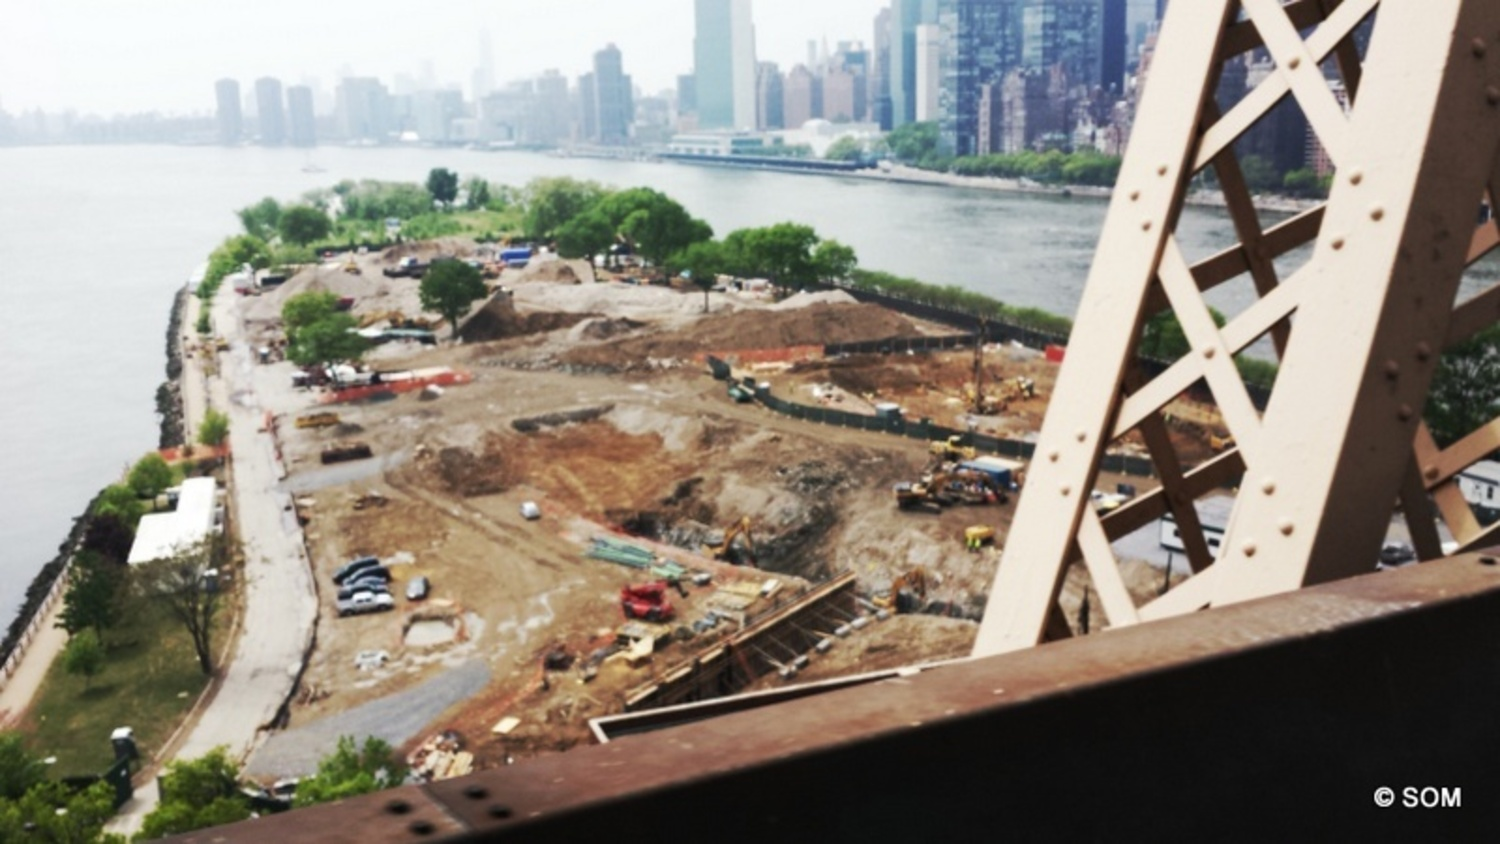 Construction photo showing early earth-moving at the site near the southern end of Roosevelt Island